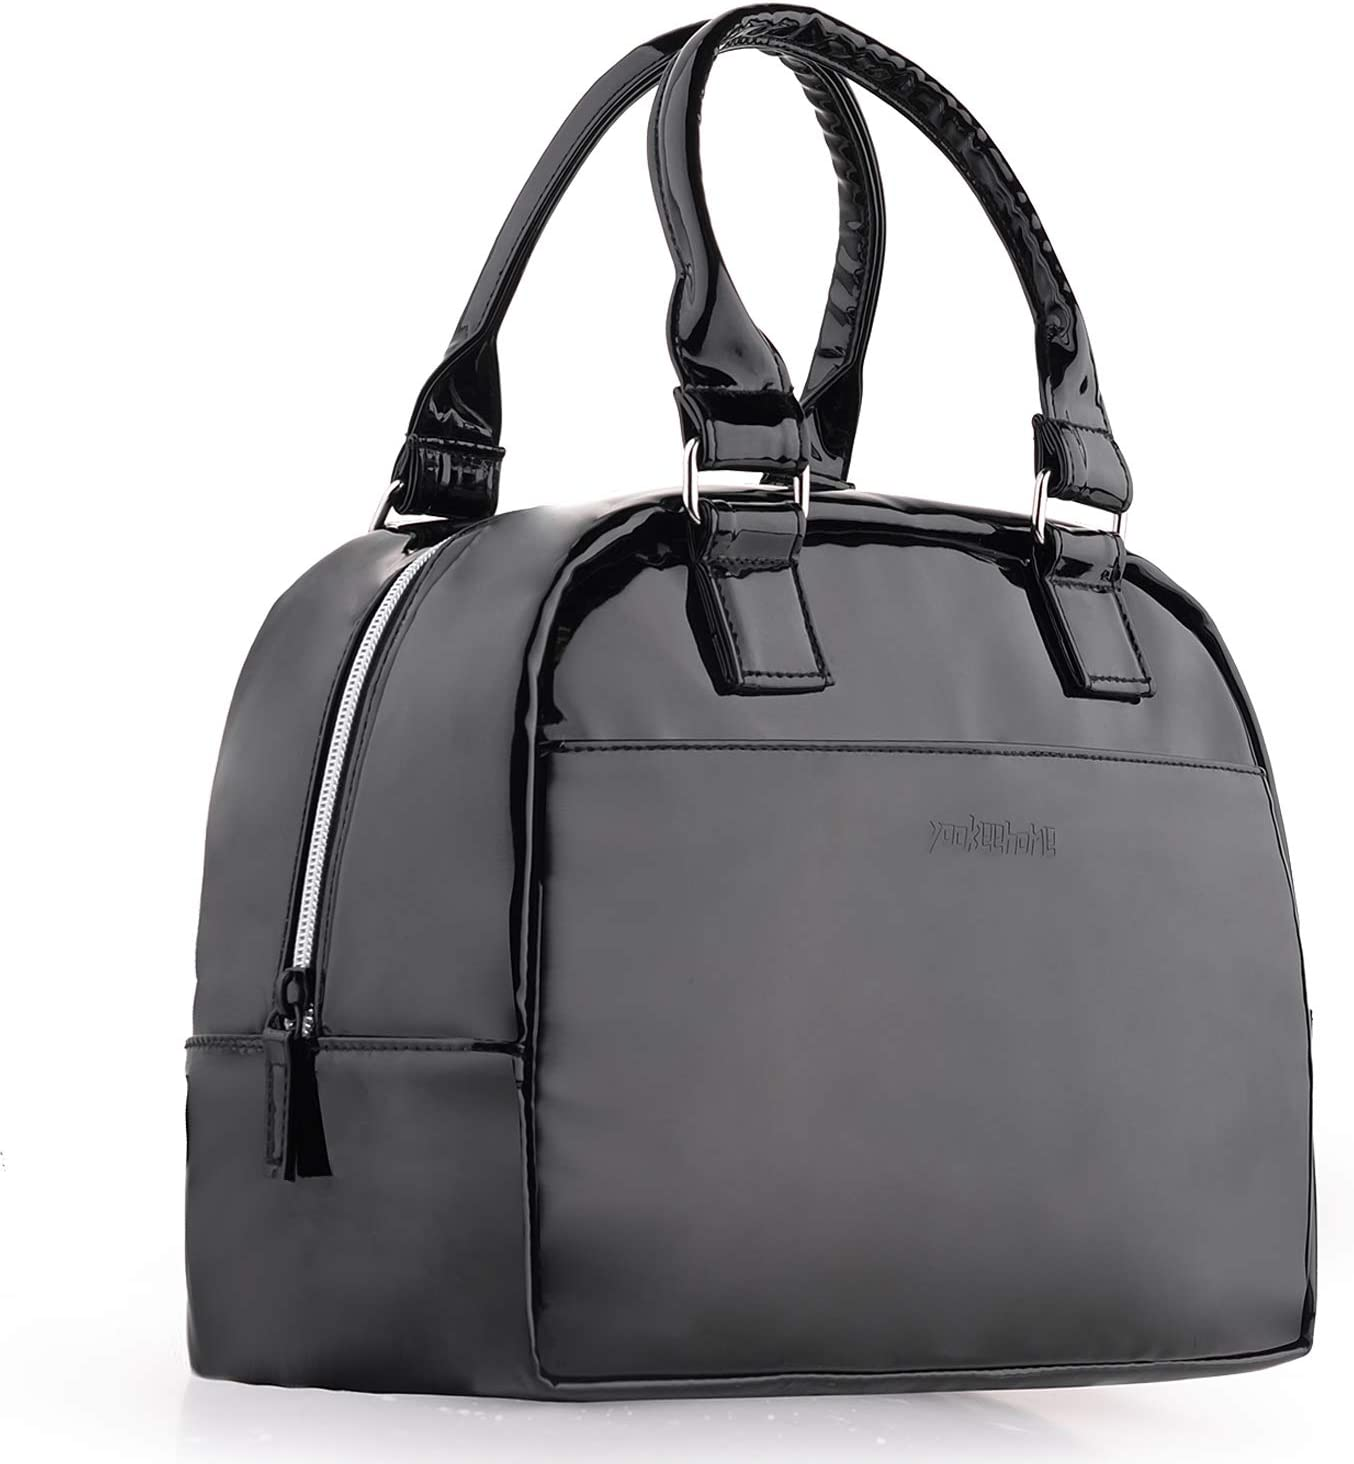 Patent Leather Lunch Box for Women Black Lunch Bags Thick Insulated Lunch Bags for Adults